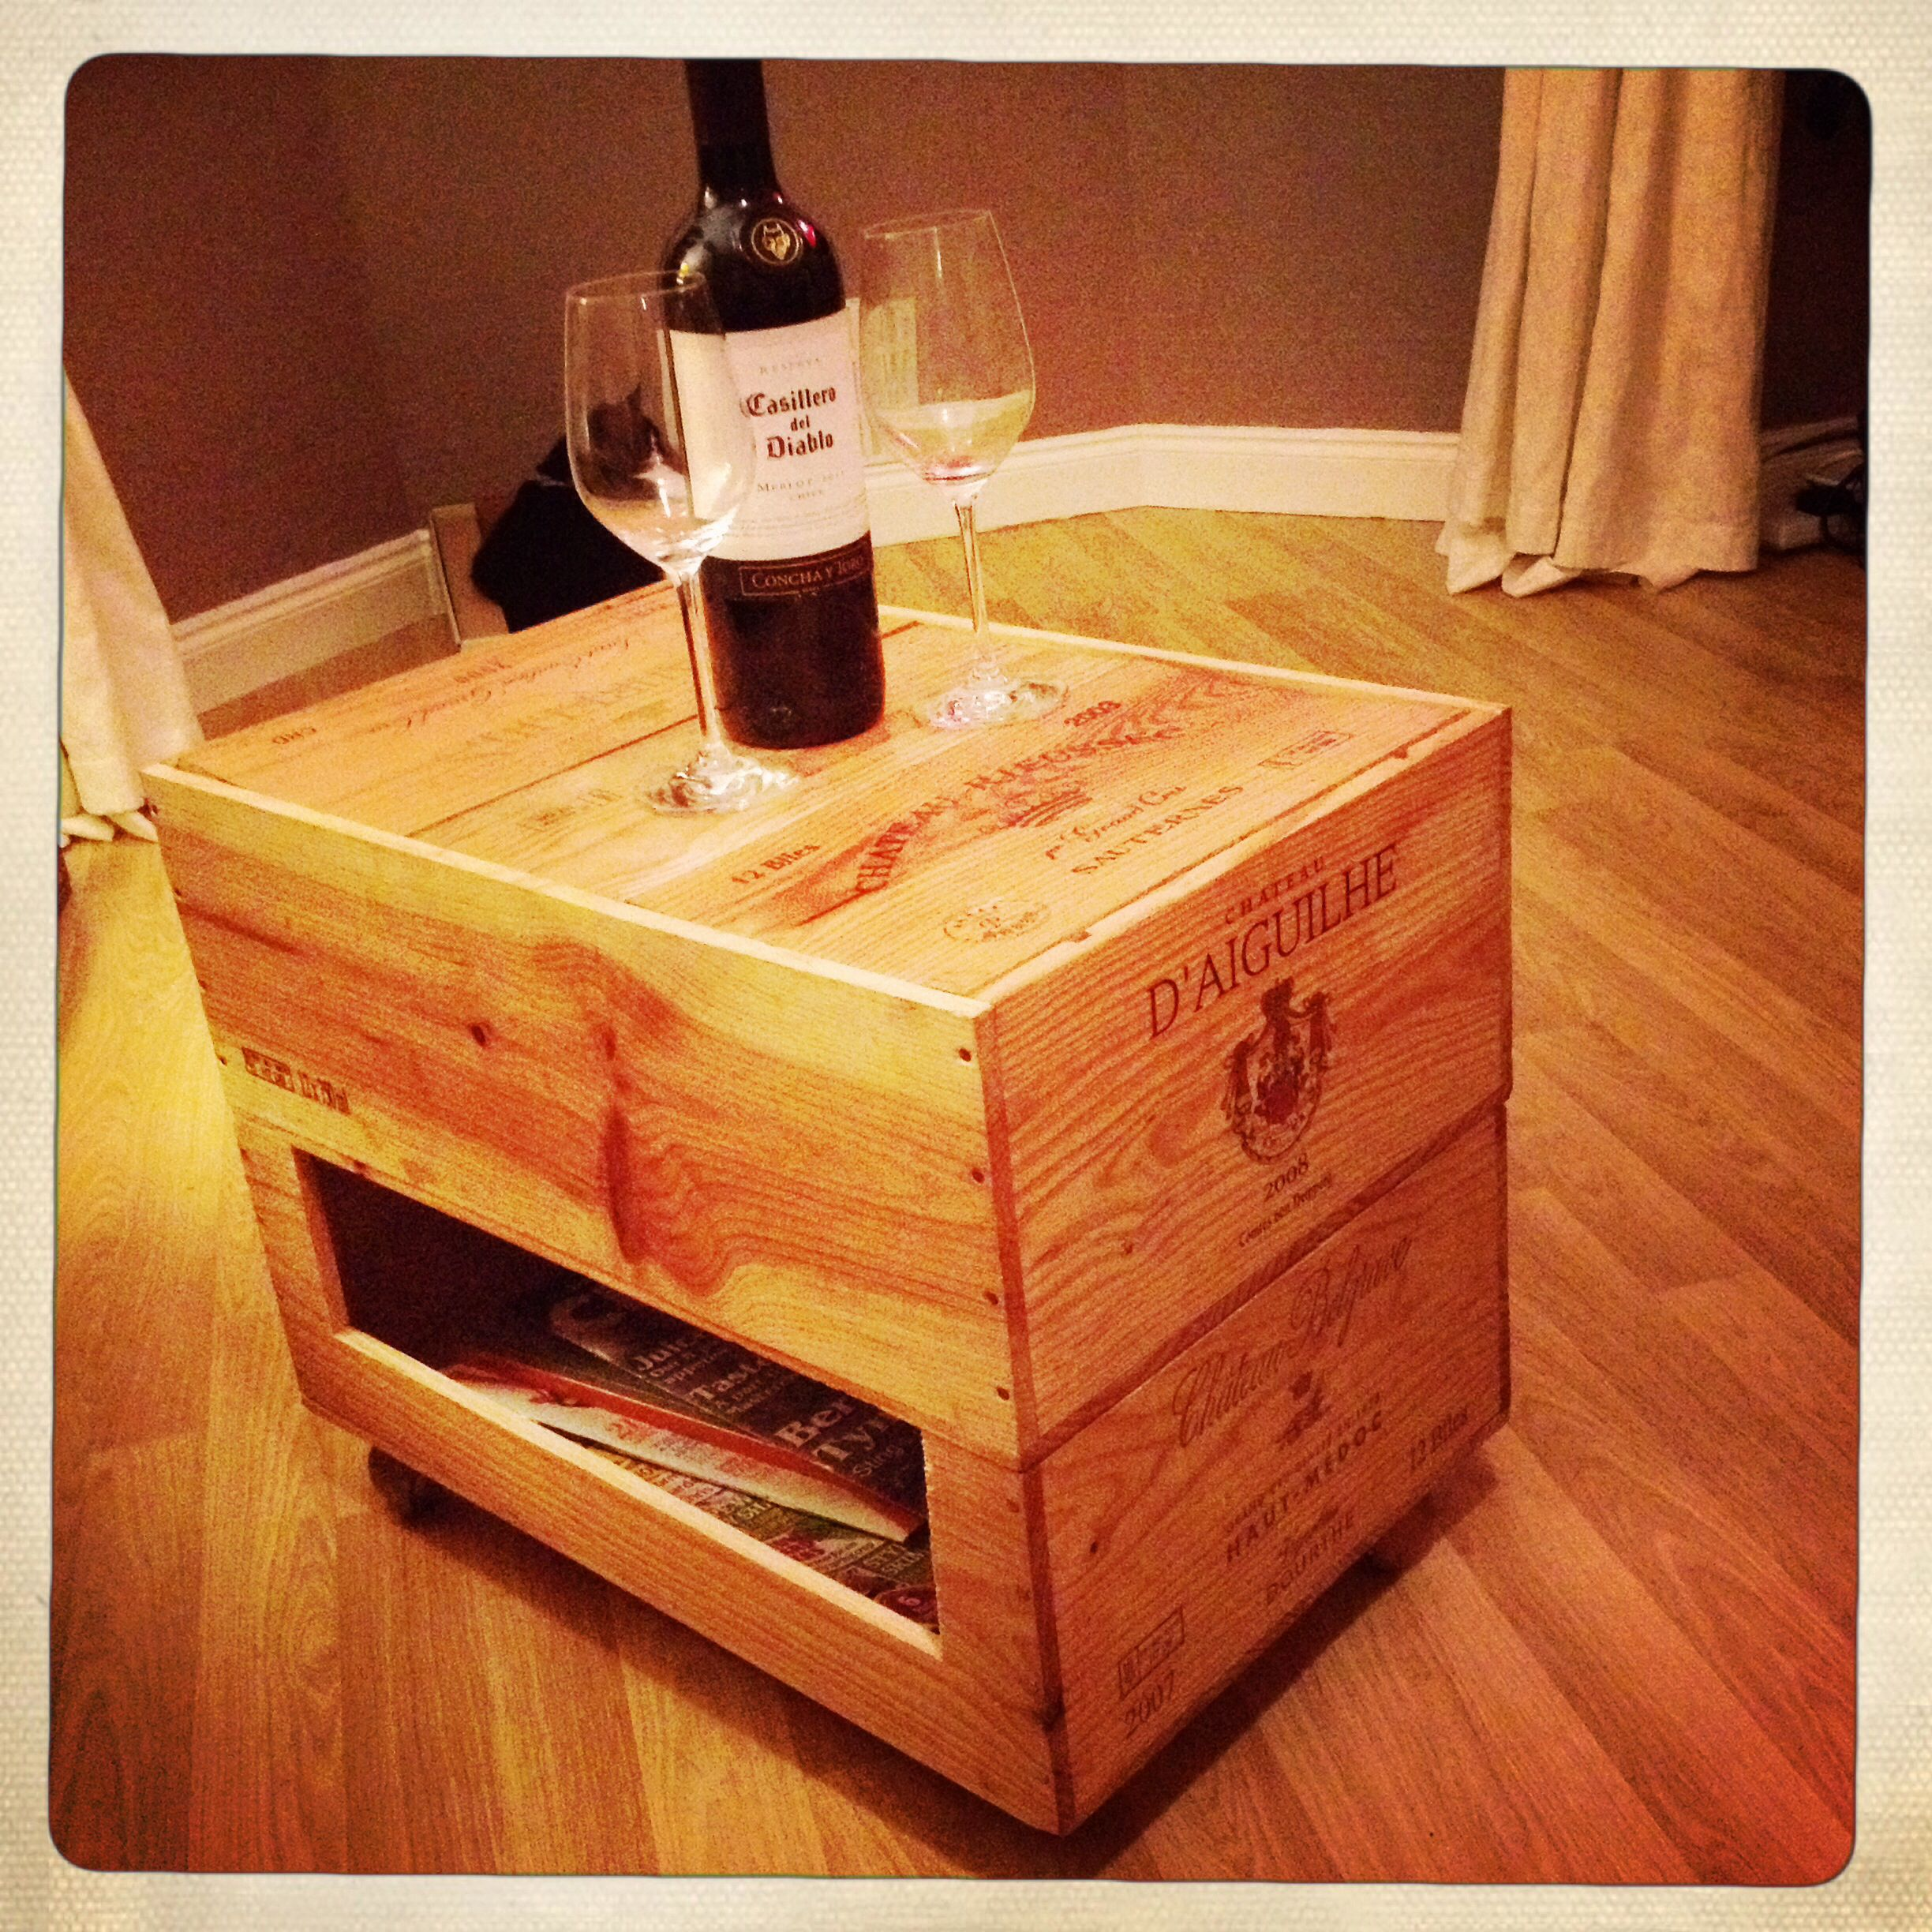 Wine box coffee table and magazine rack c/o Mr Morley